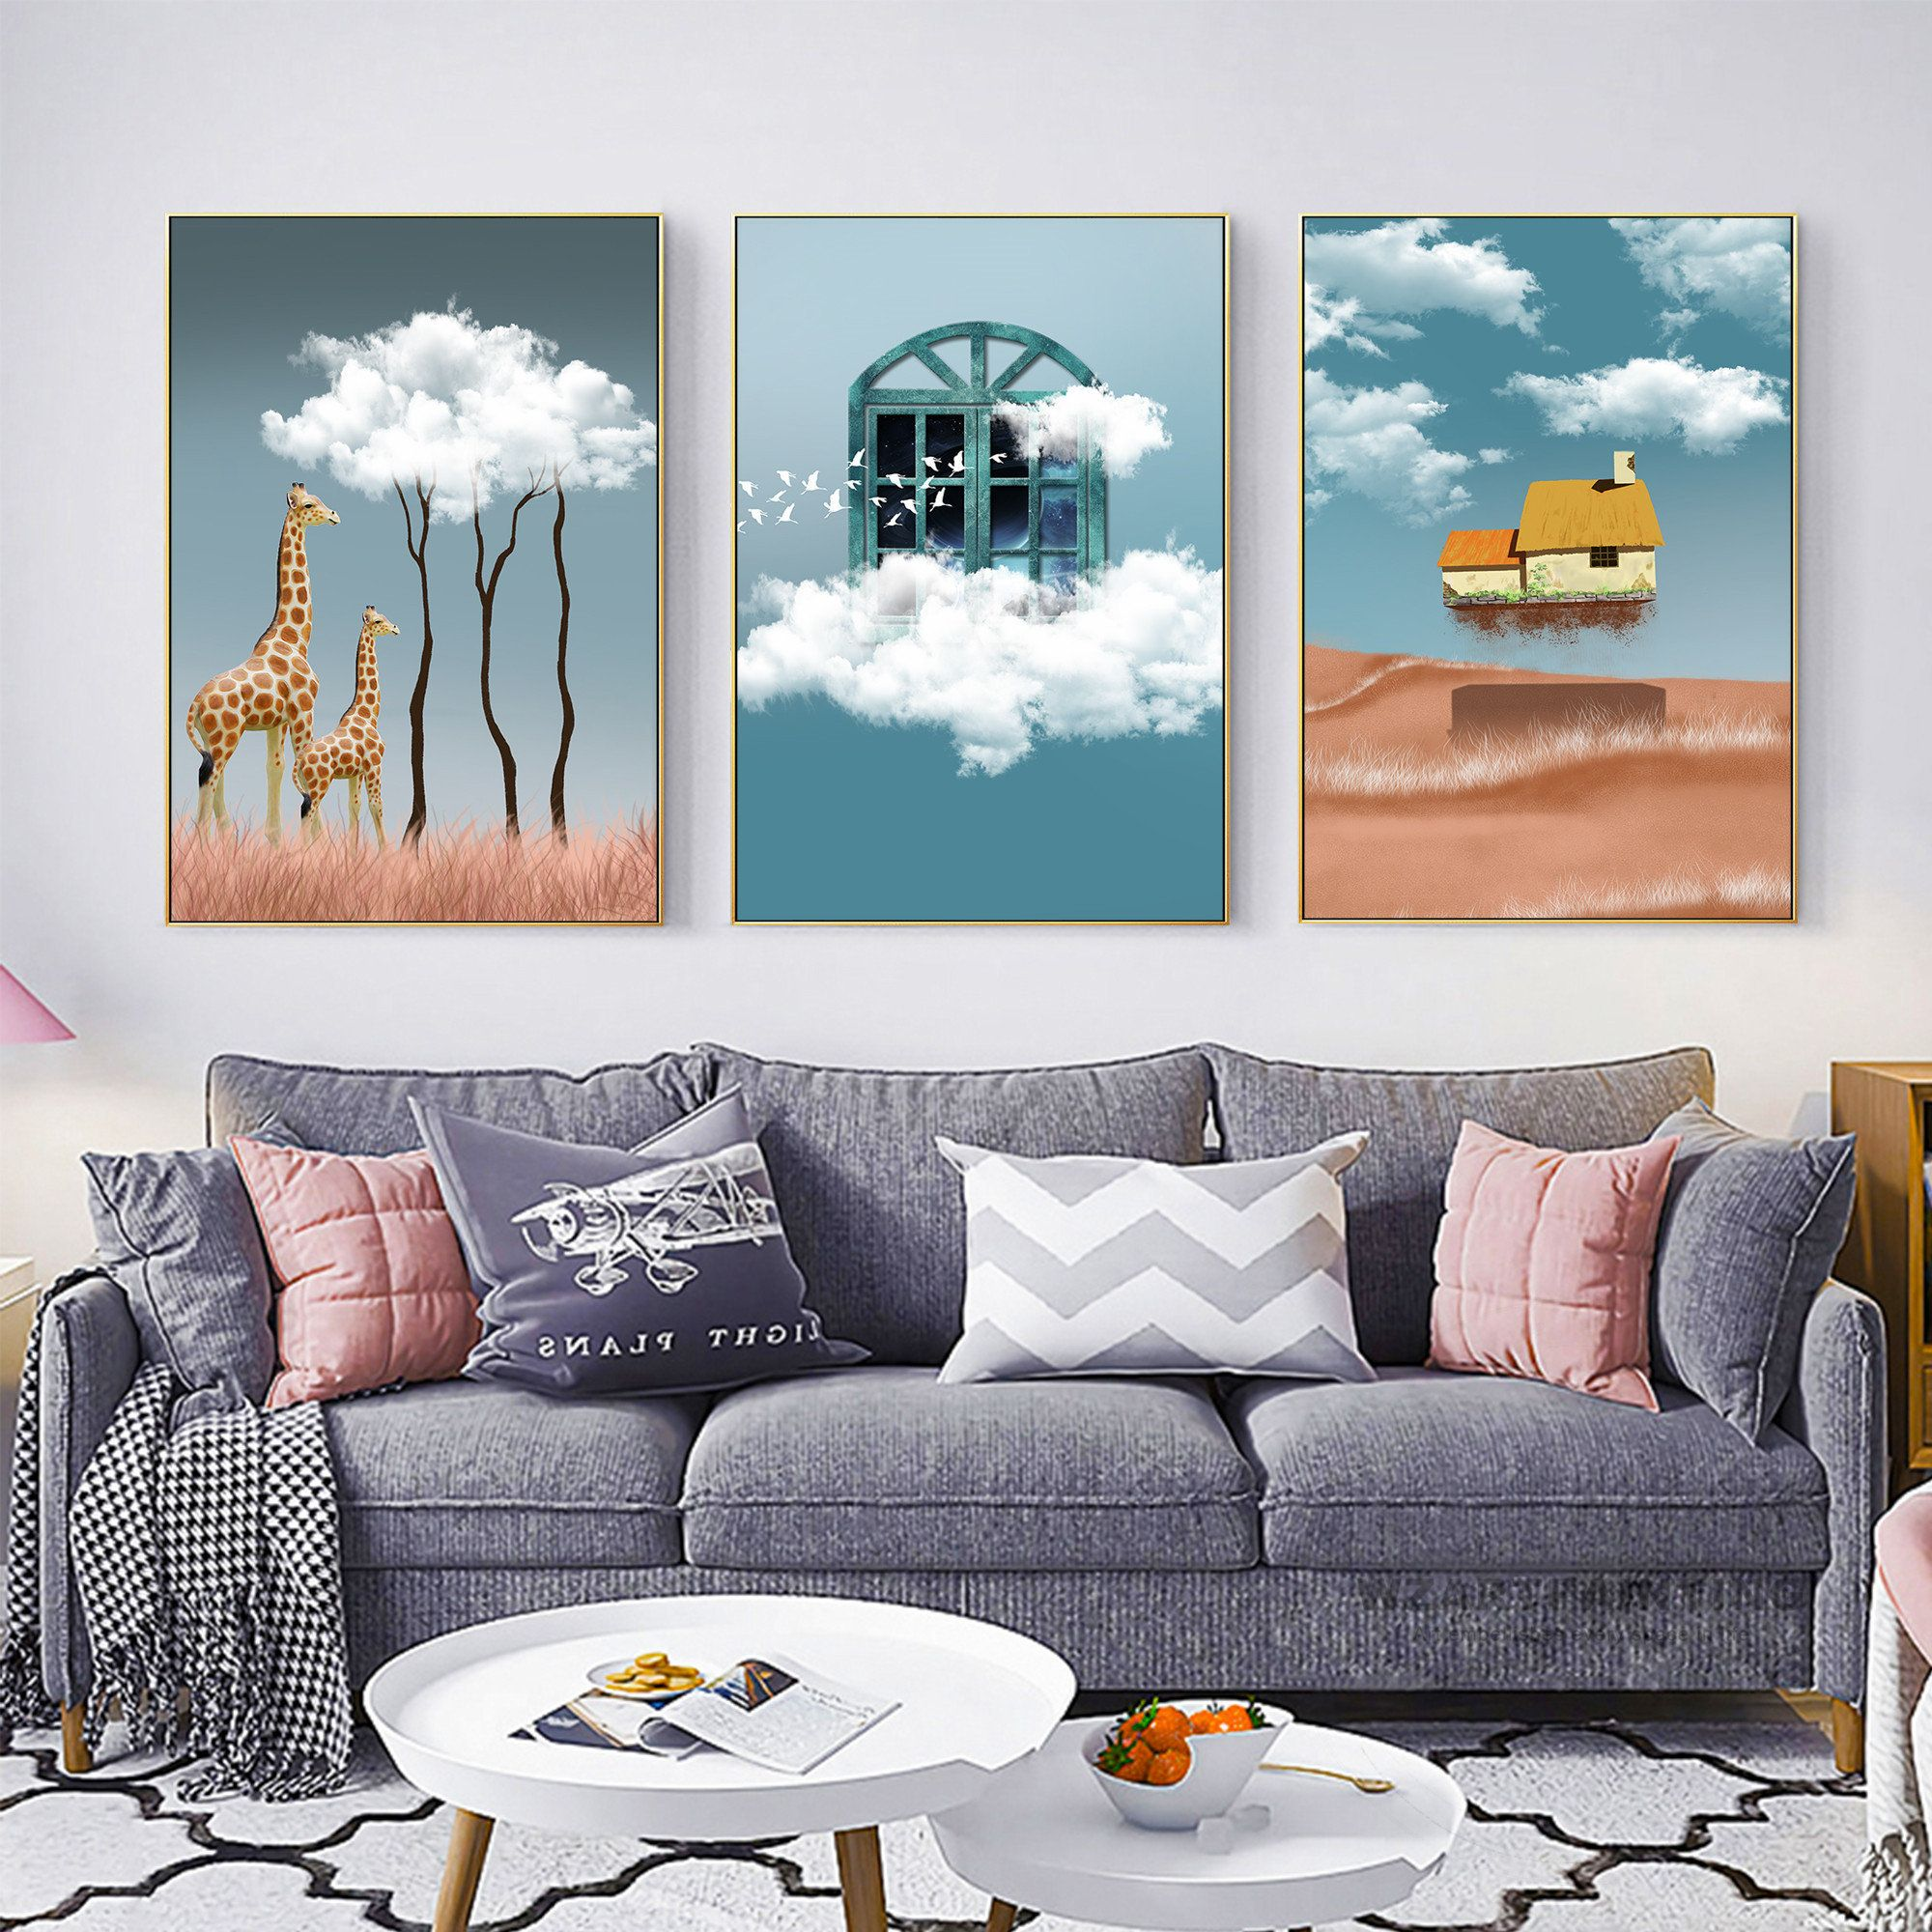 Frame Wall Art Set Of 3 Prints Painting Giraffe Window House Etsy Framed Wall Art Sets Frames On Wall Wall Art Sets